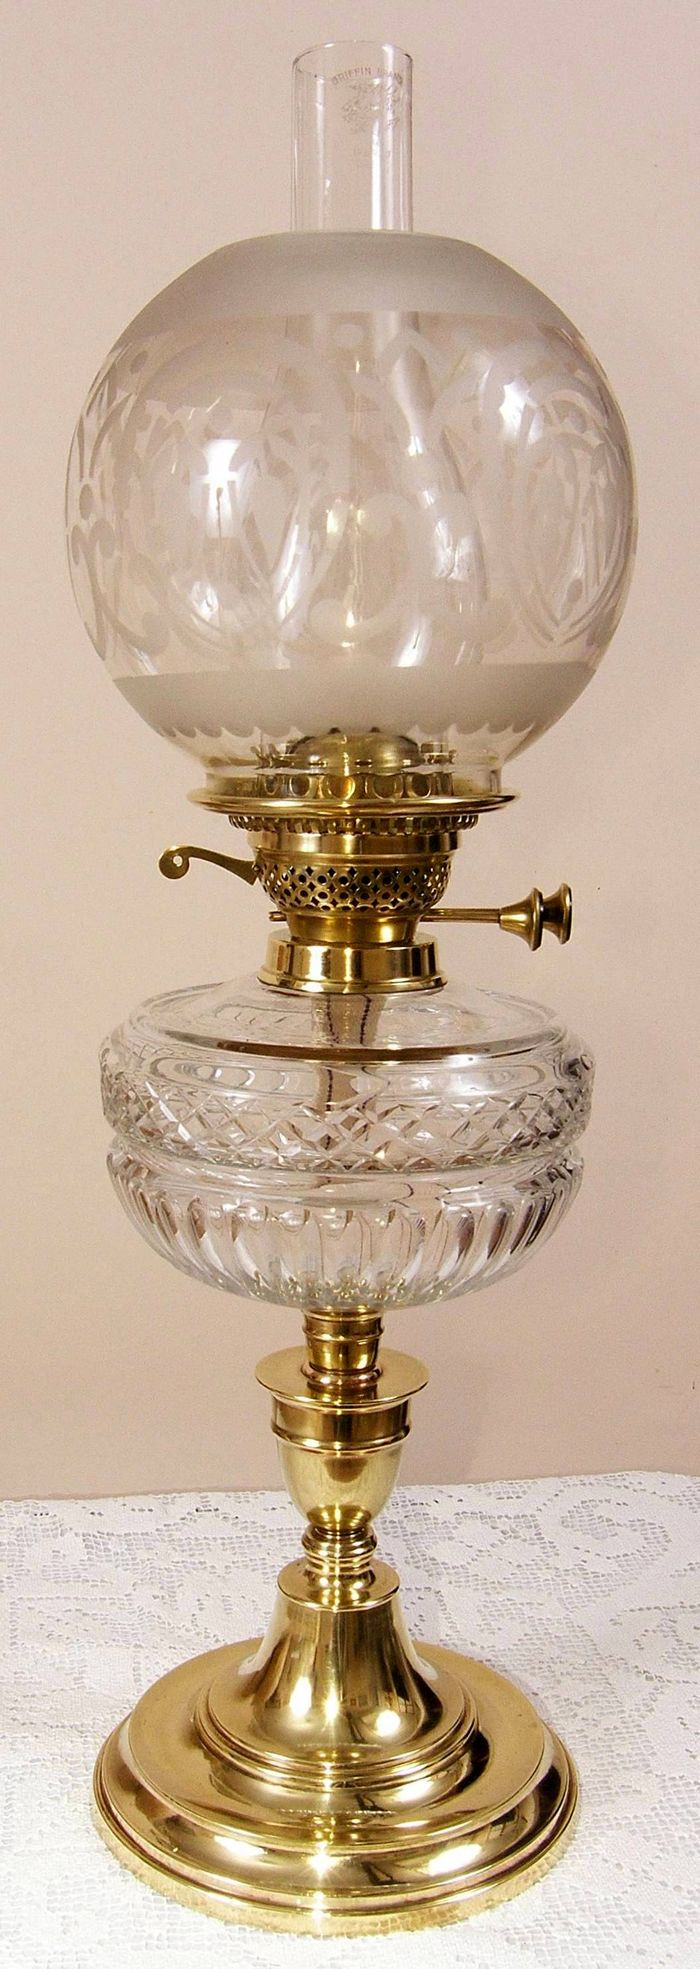 Best 25+ Antique oil lamps ideas on Pinterest | Oil lamps, Antique ...